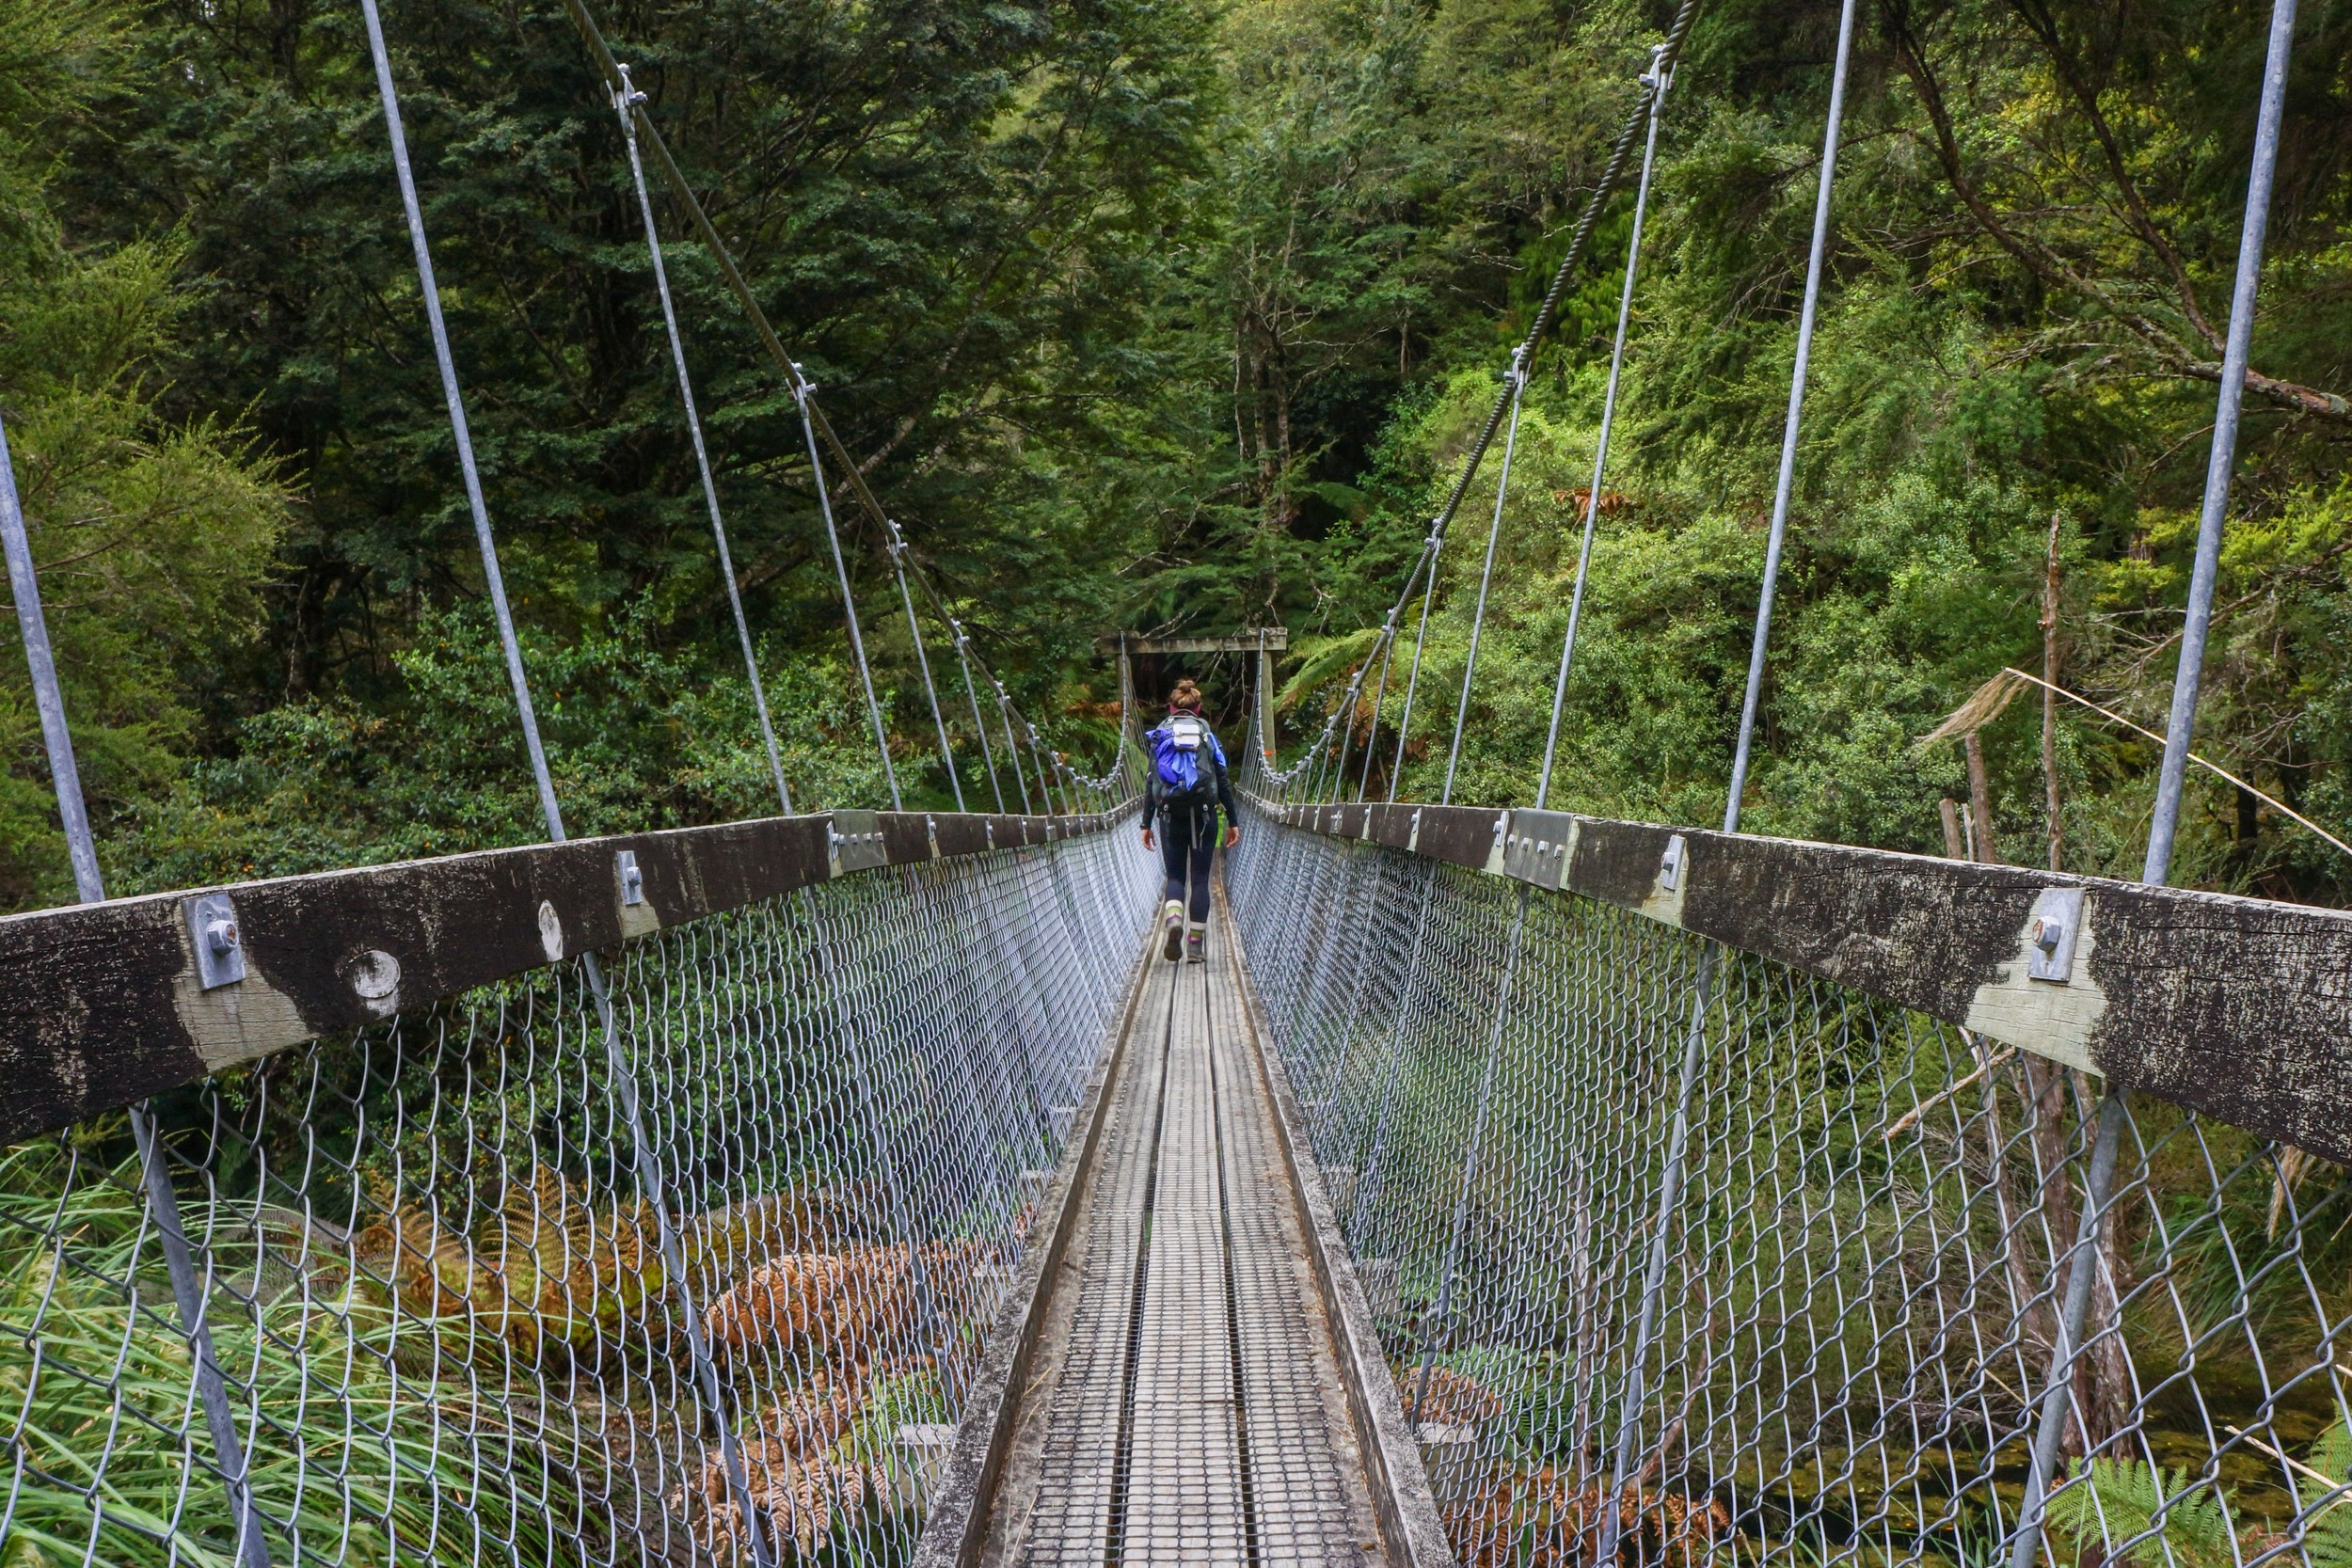 Hanging bridges are not for the faint of heart.